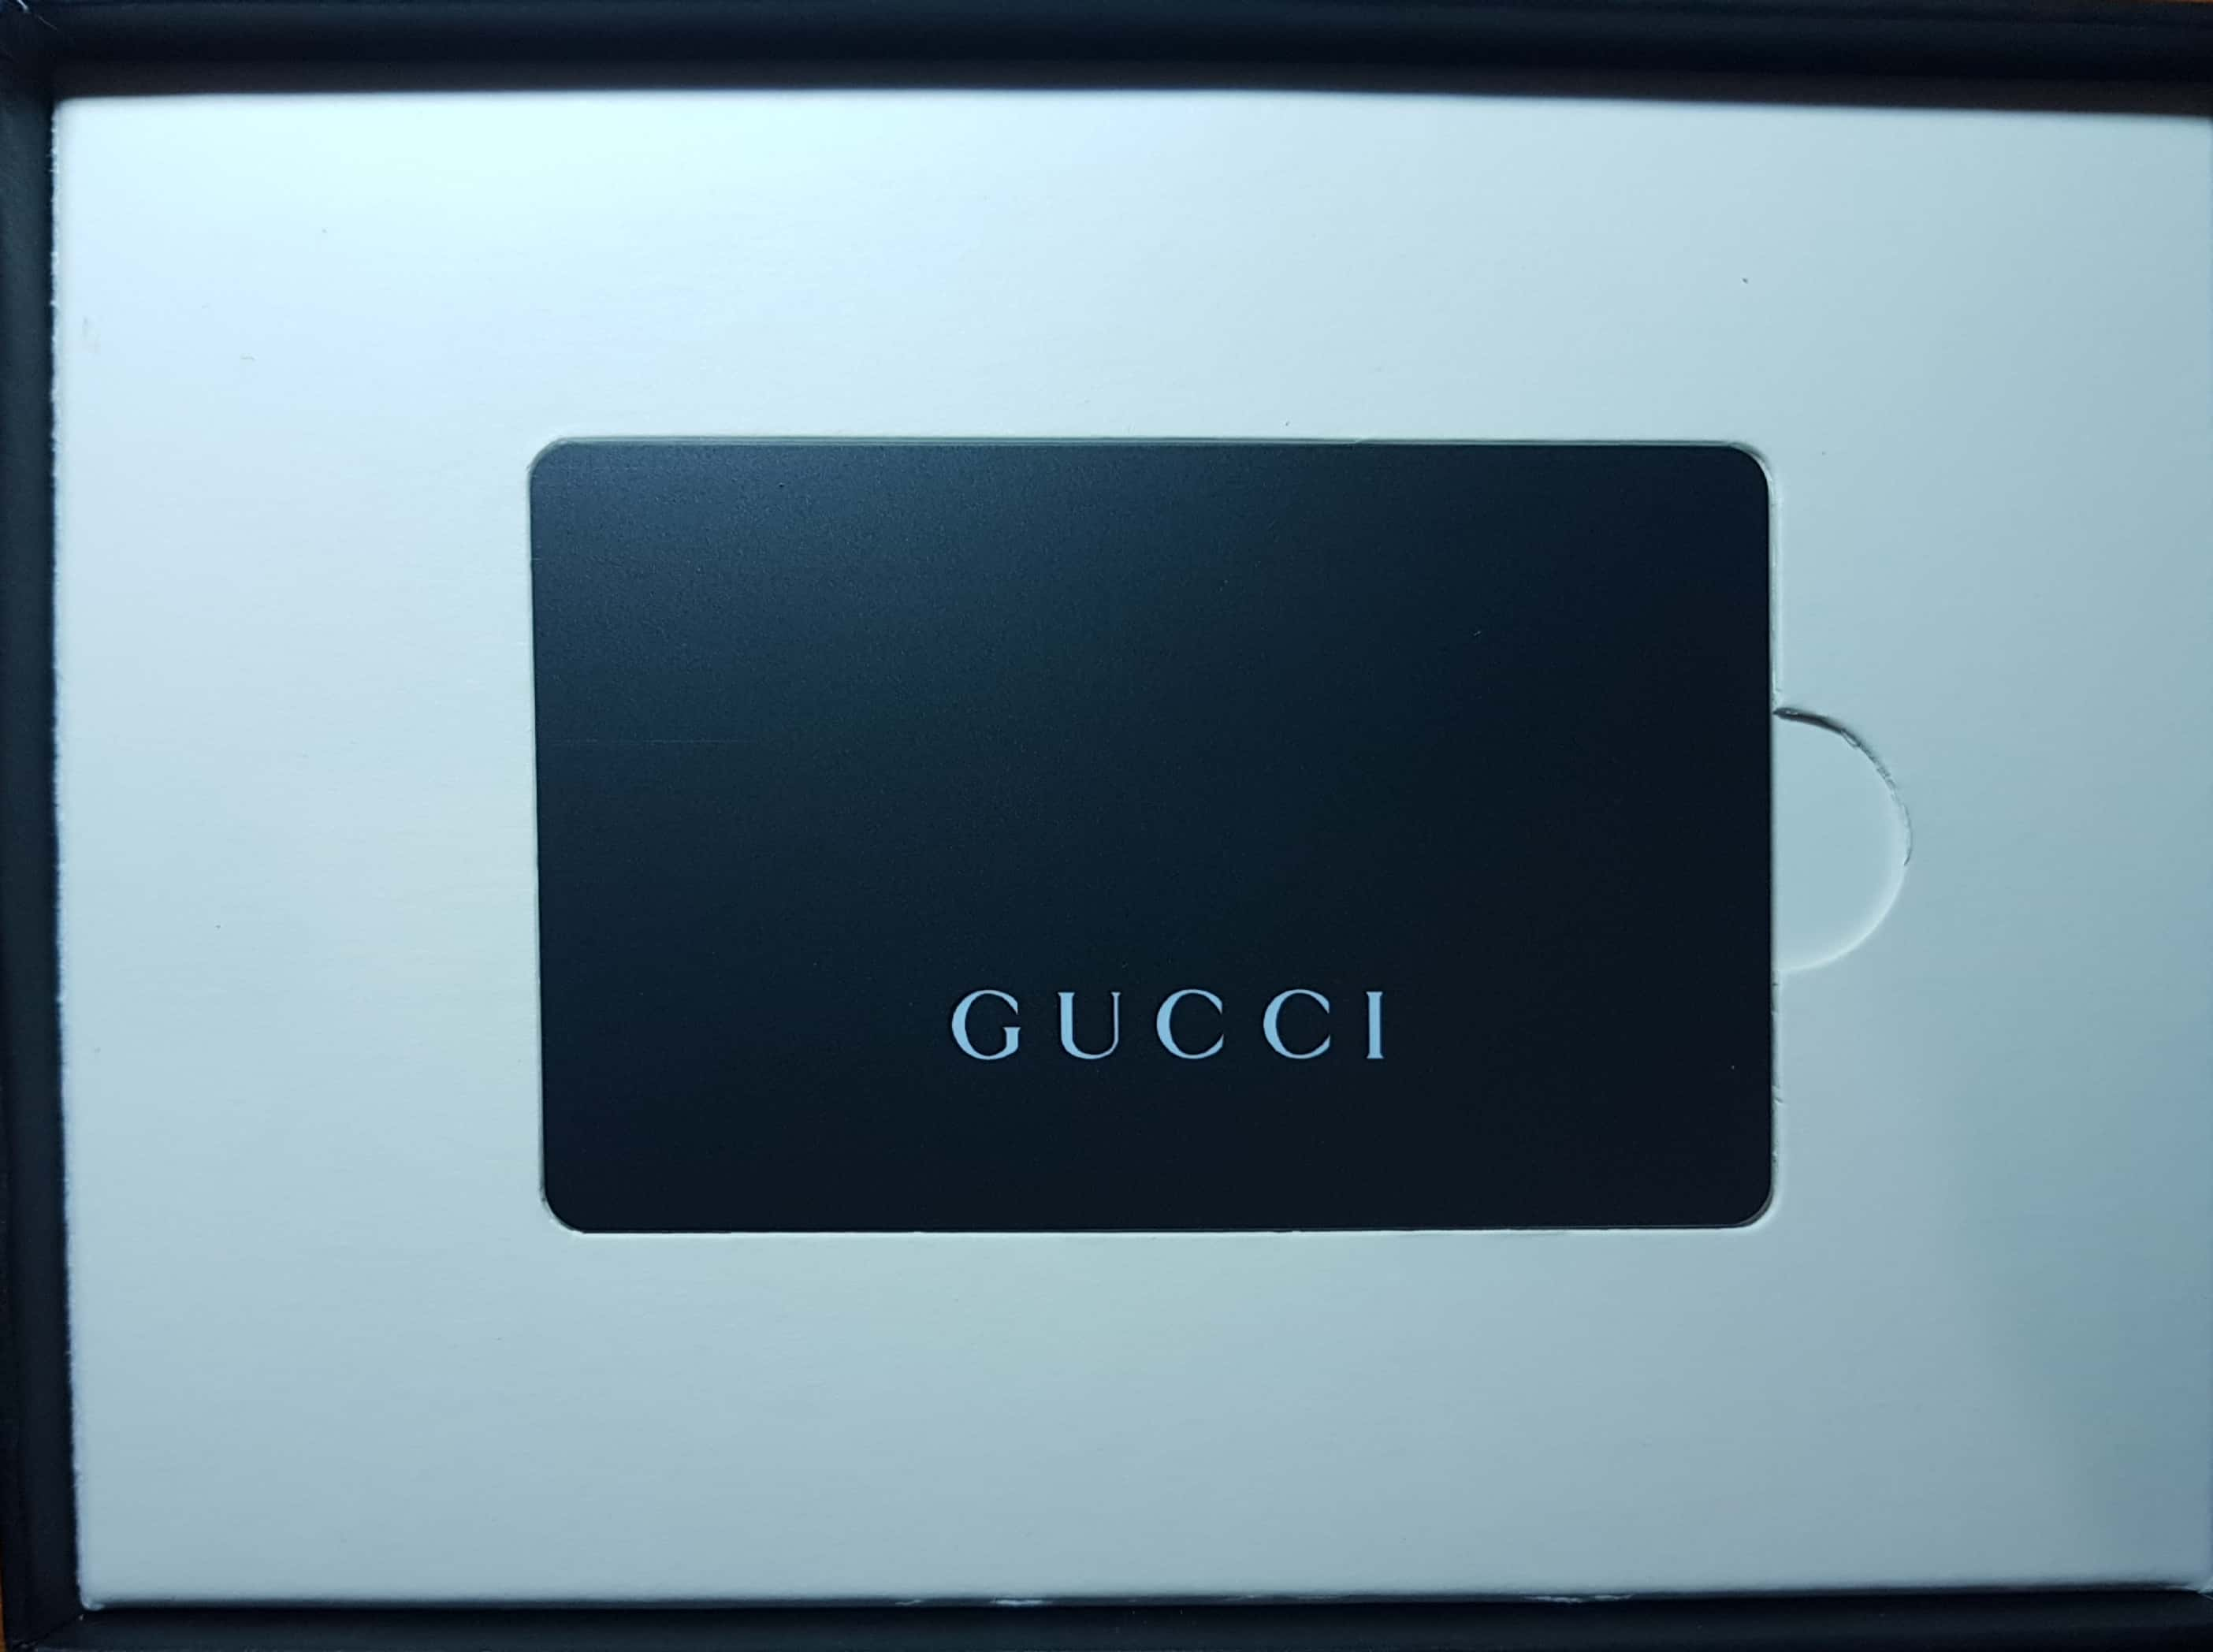 2e69fa8daa $500 Gucci Gift Voucher and Card, Entertainment, Gift Cards & Vouchers on  Carousell